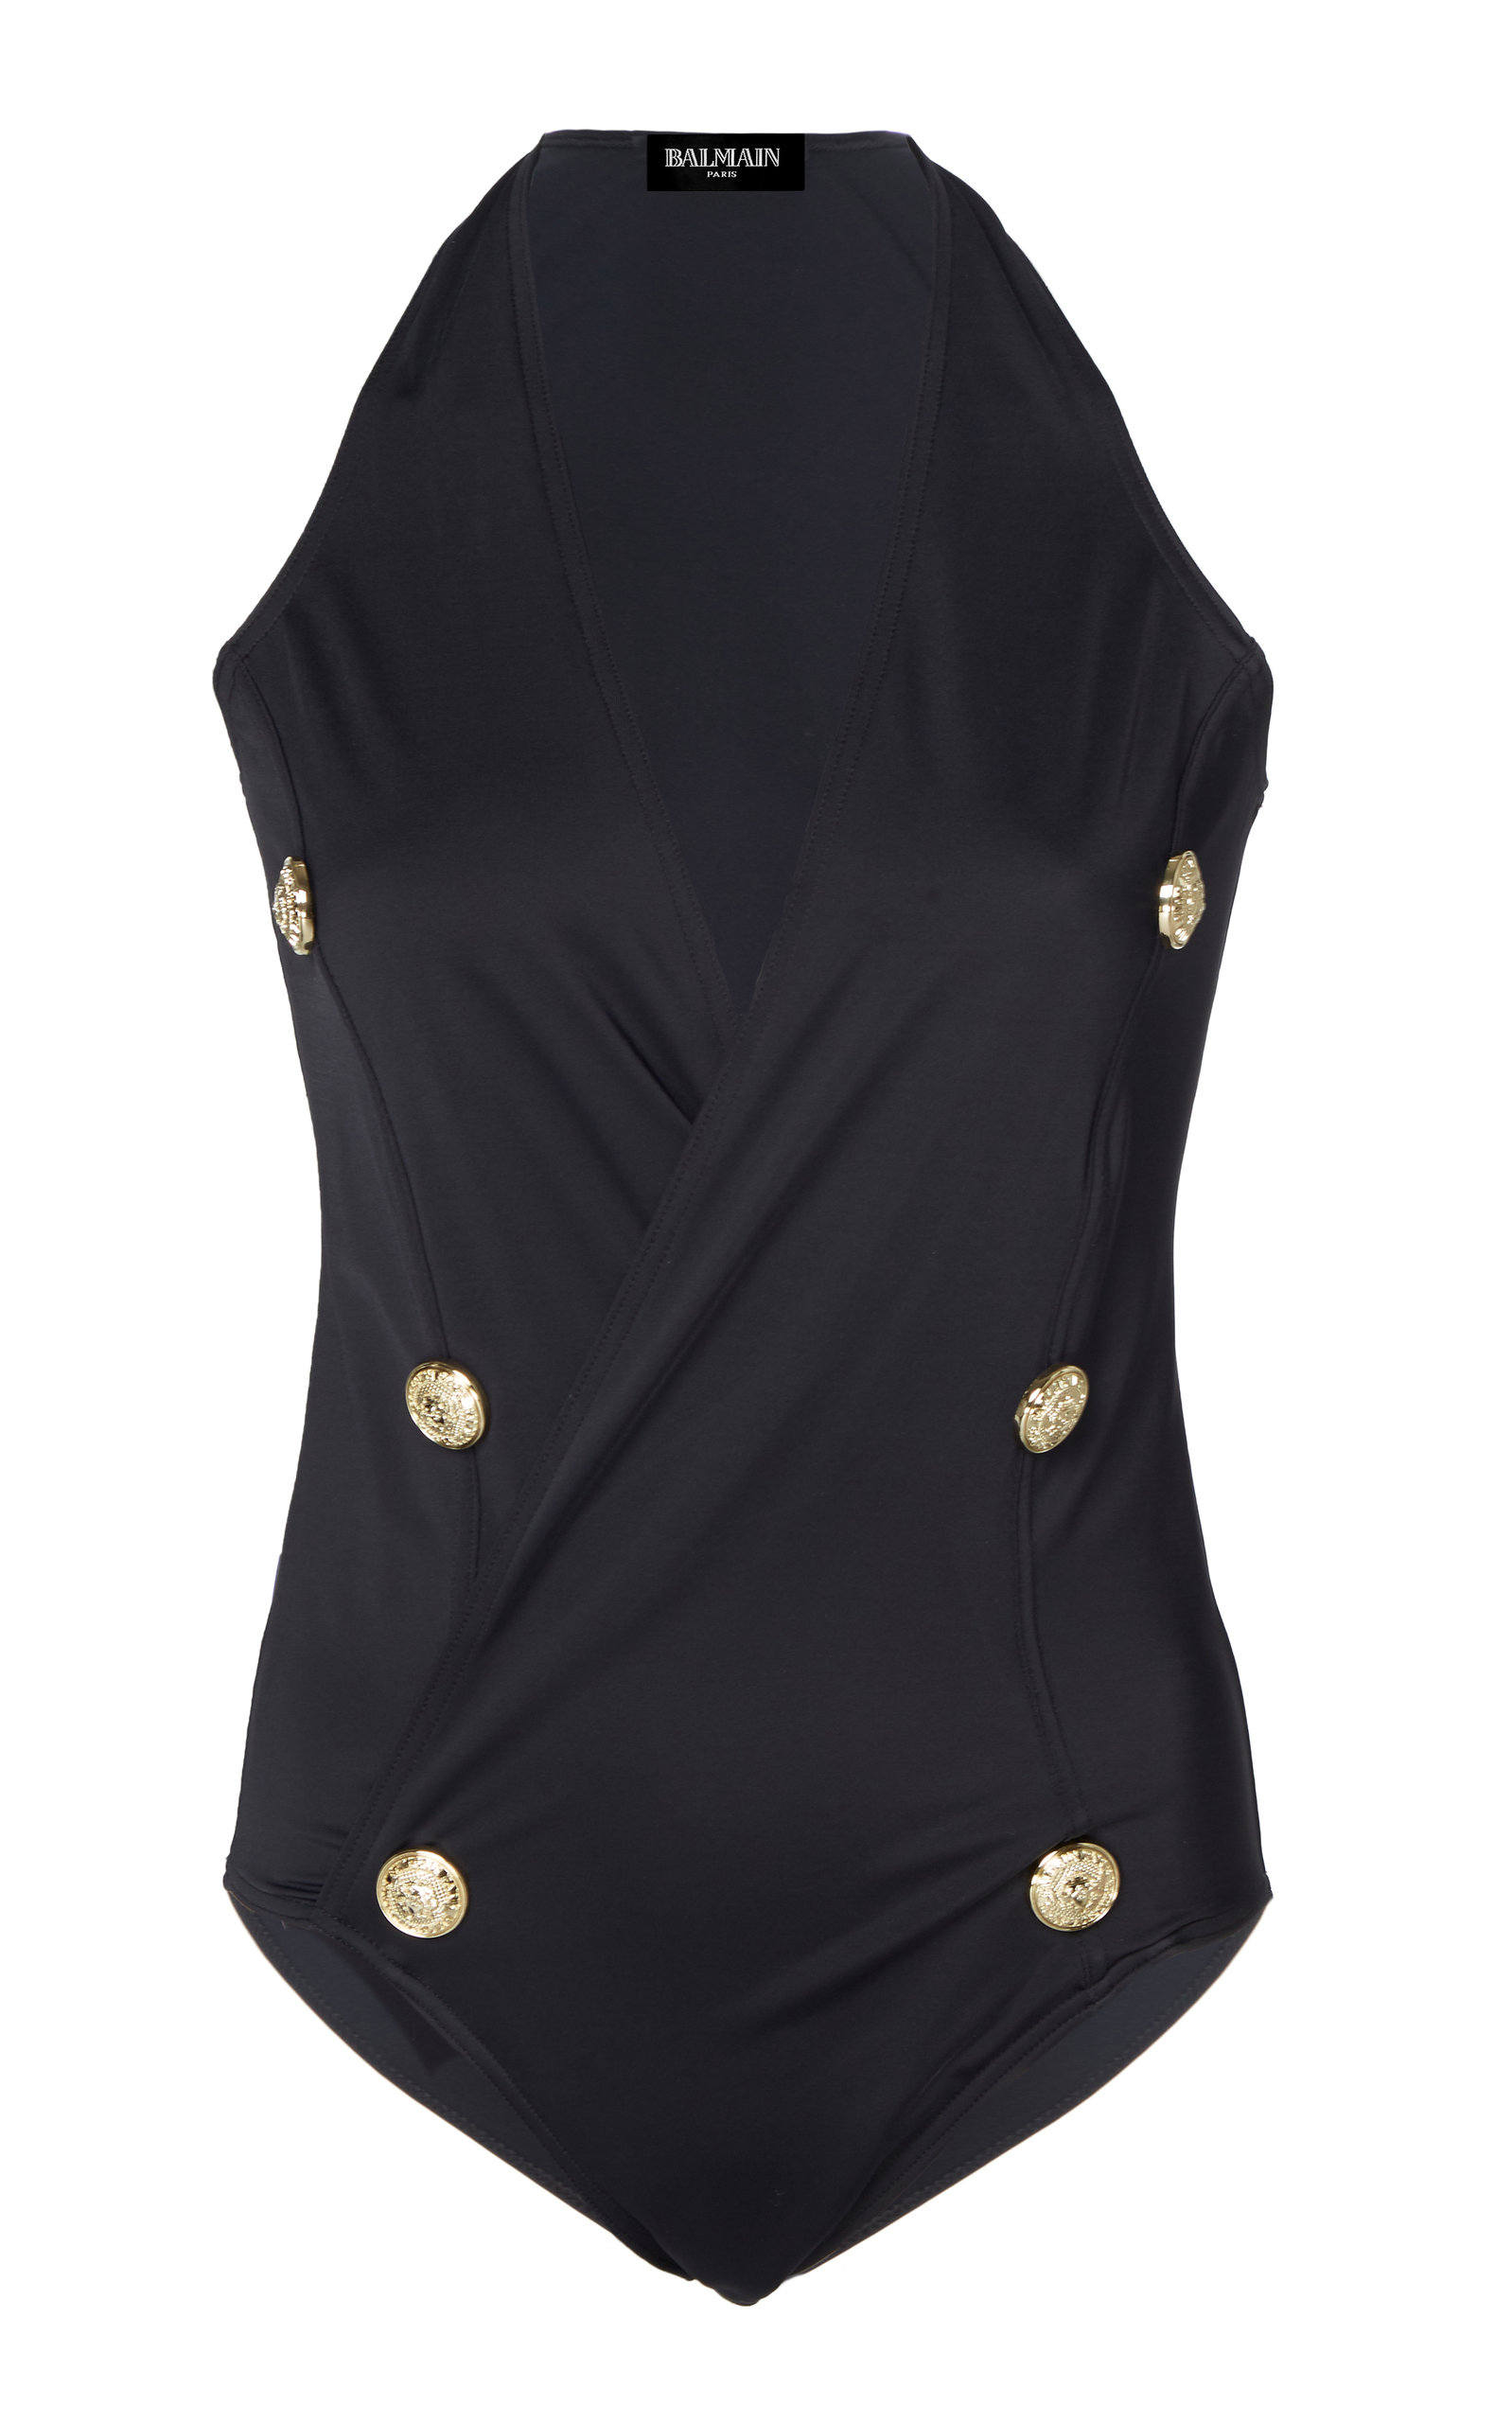 a4130103b8 BALMAIN Button-Embellished Stretch-Jersey Swimsuit in Black